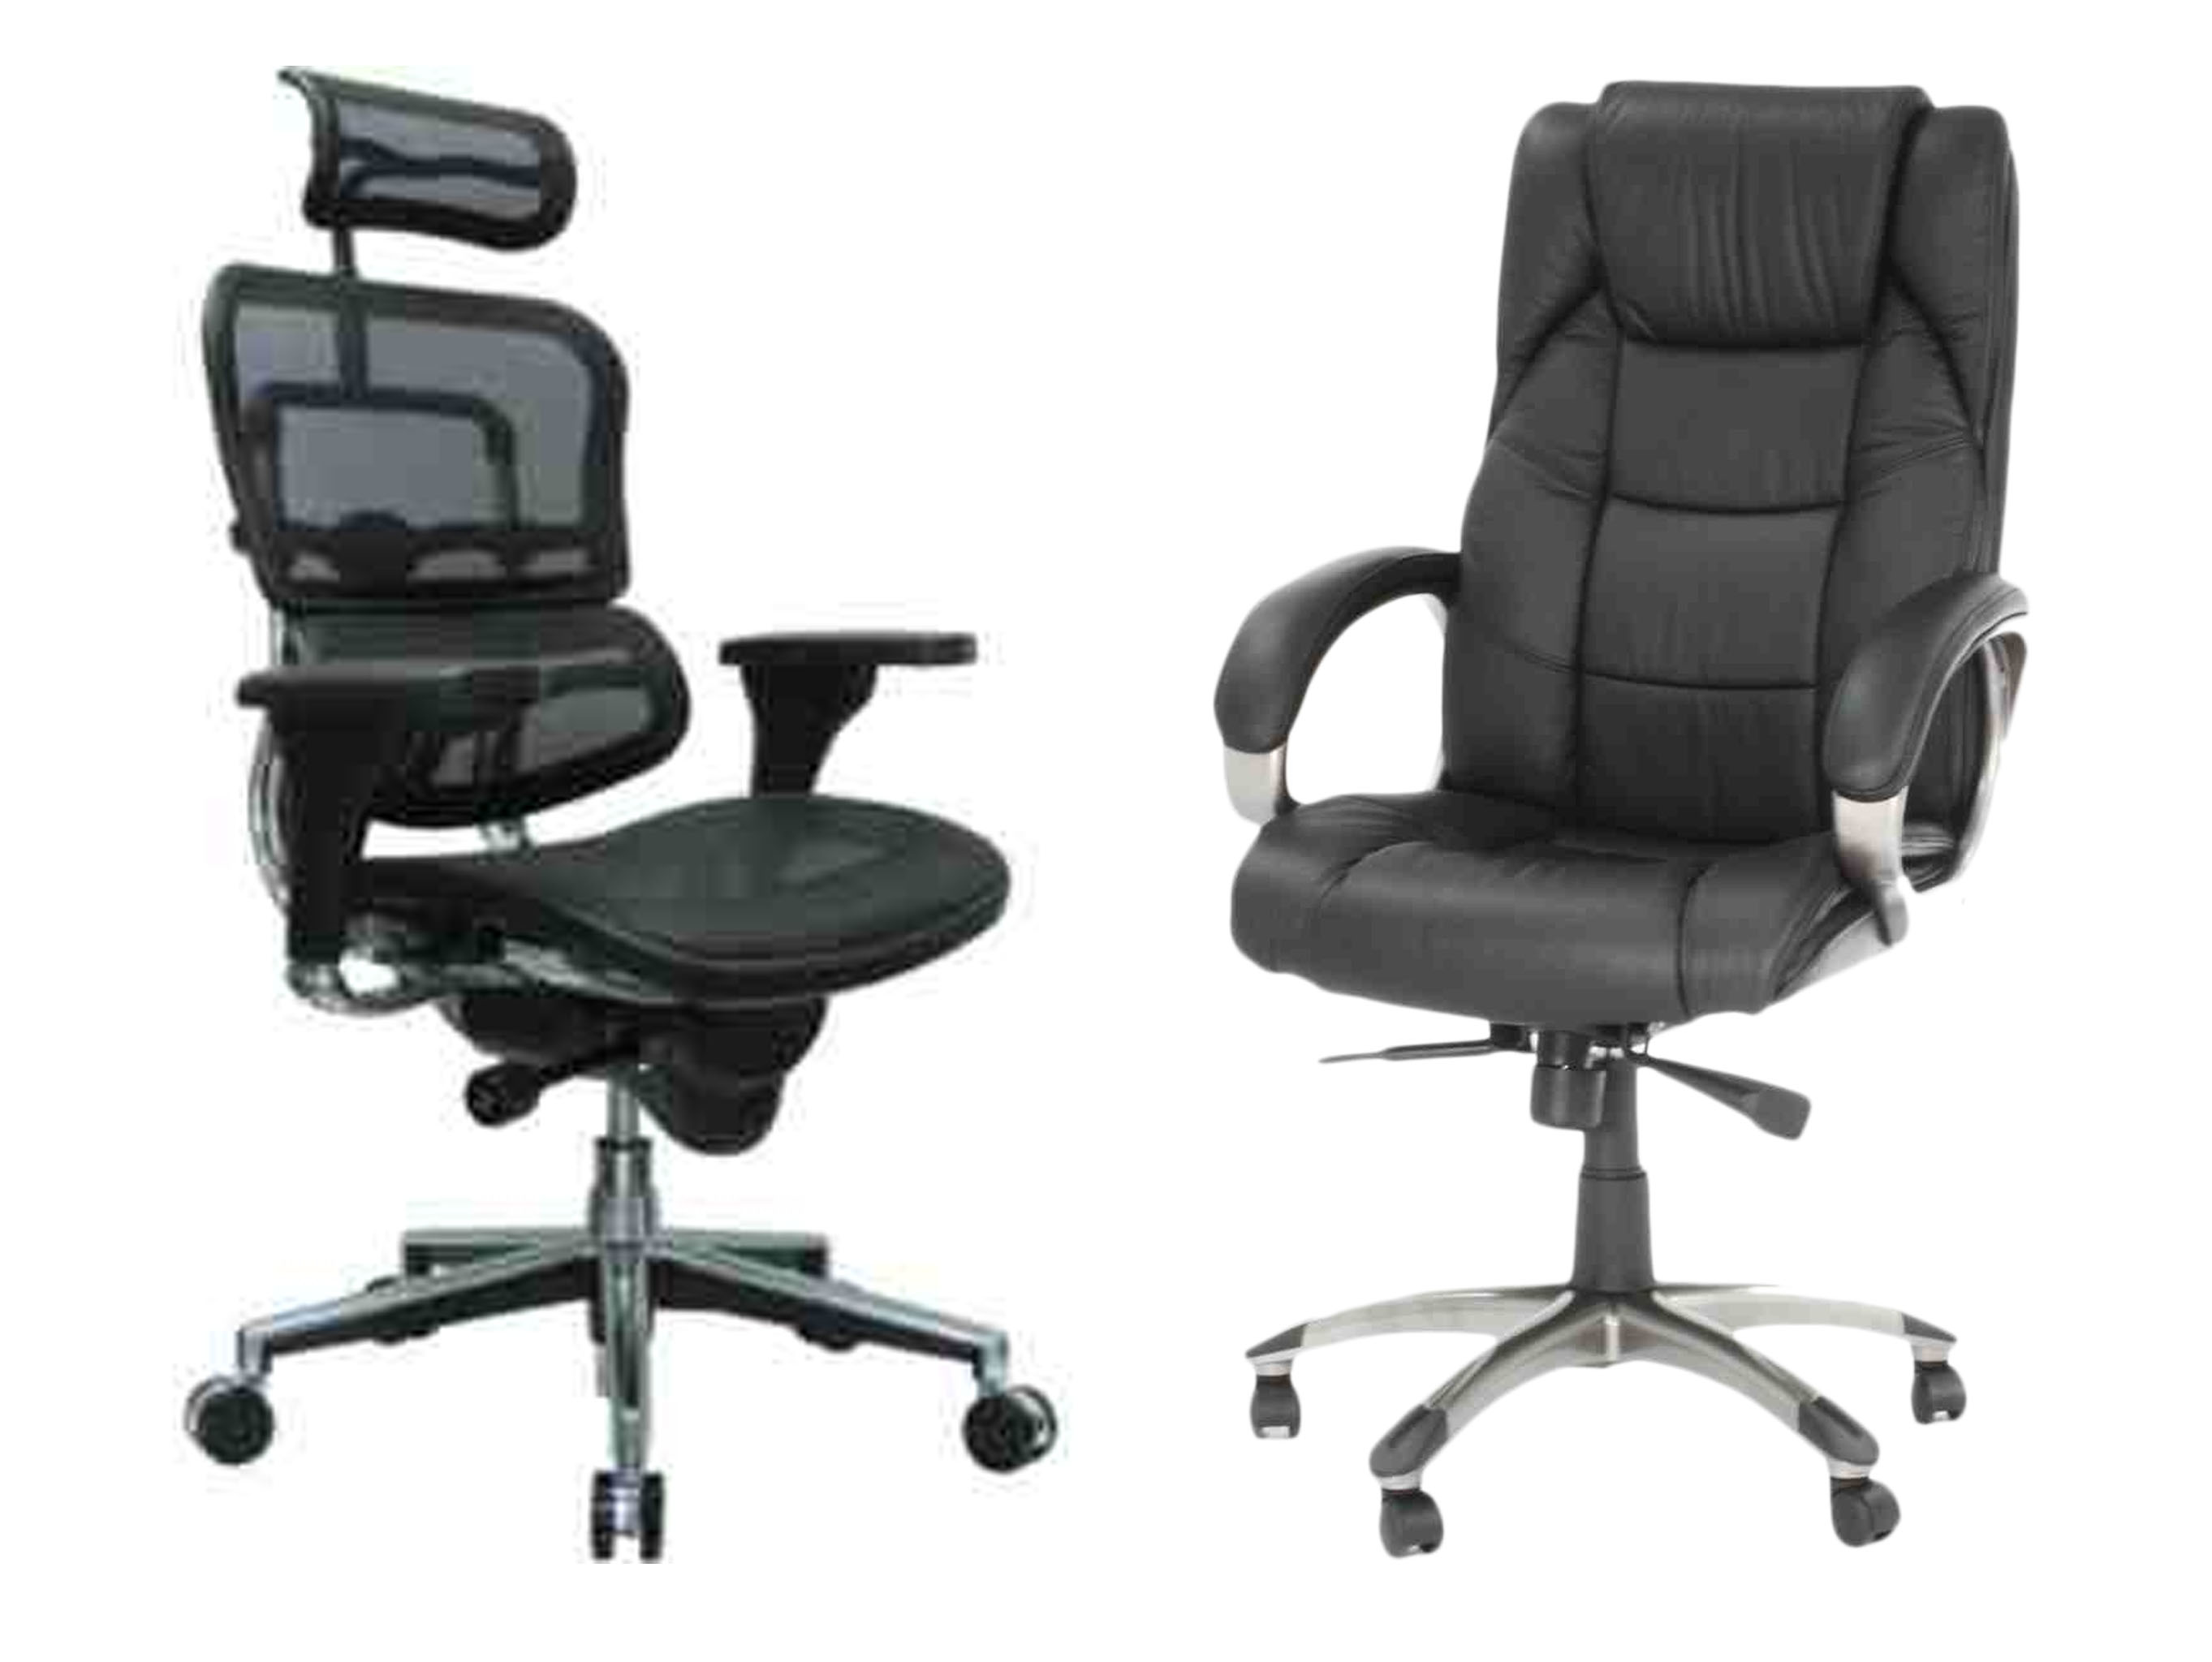 Best Leather Chairs Mesh Vs Leather Chair Which One Is Right For You Comfy